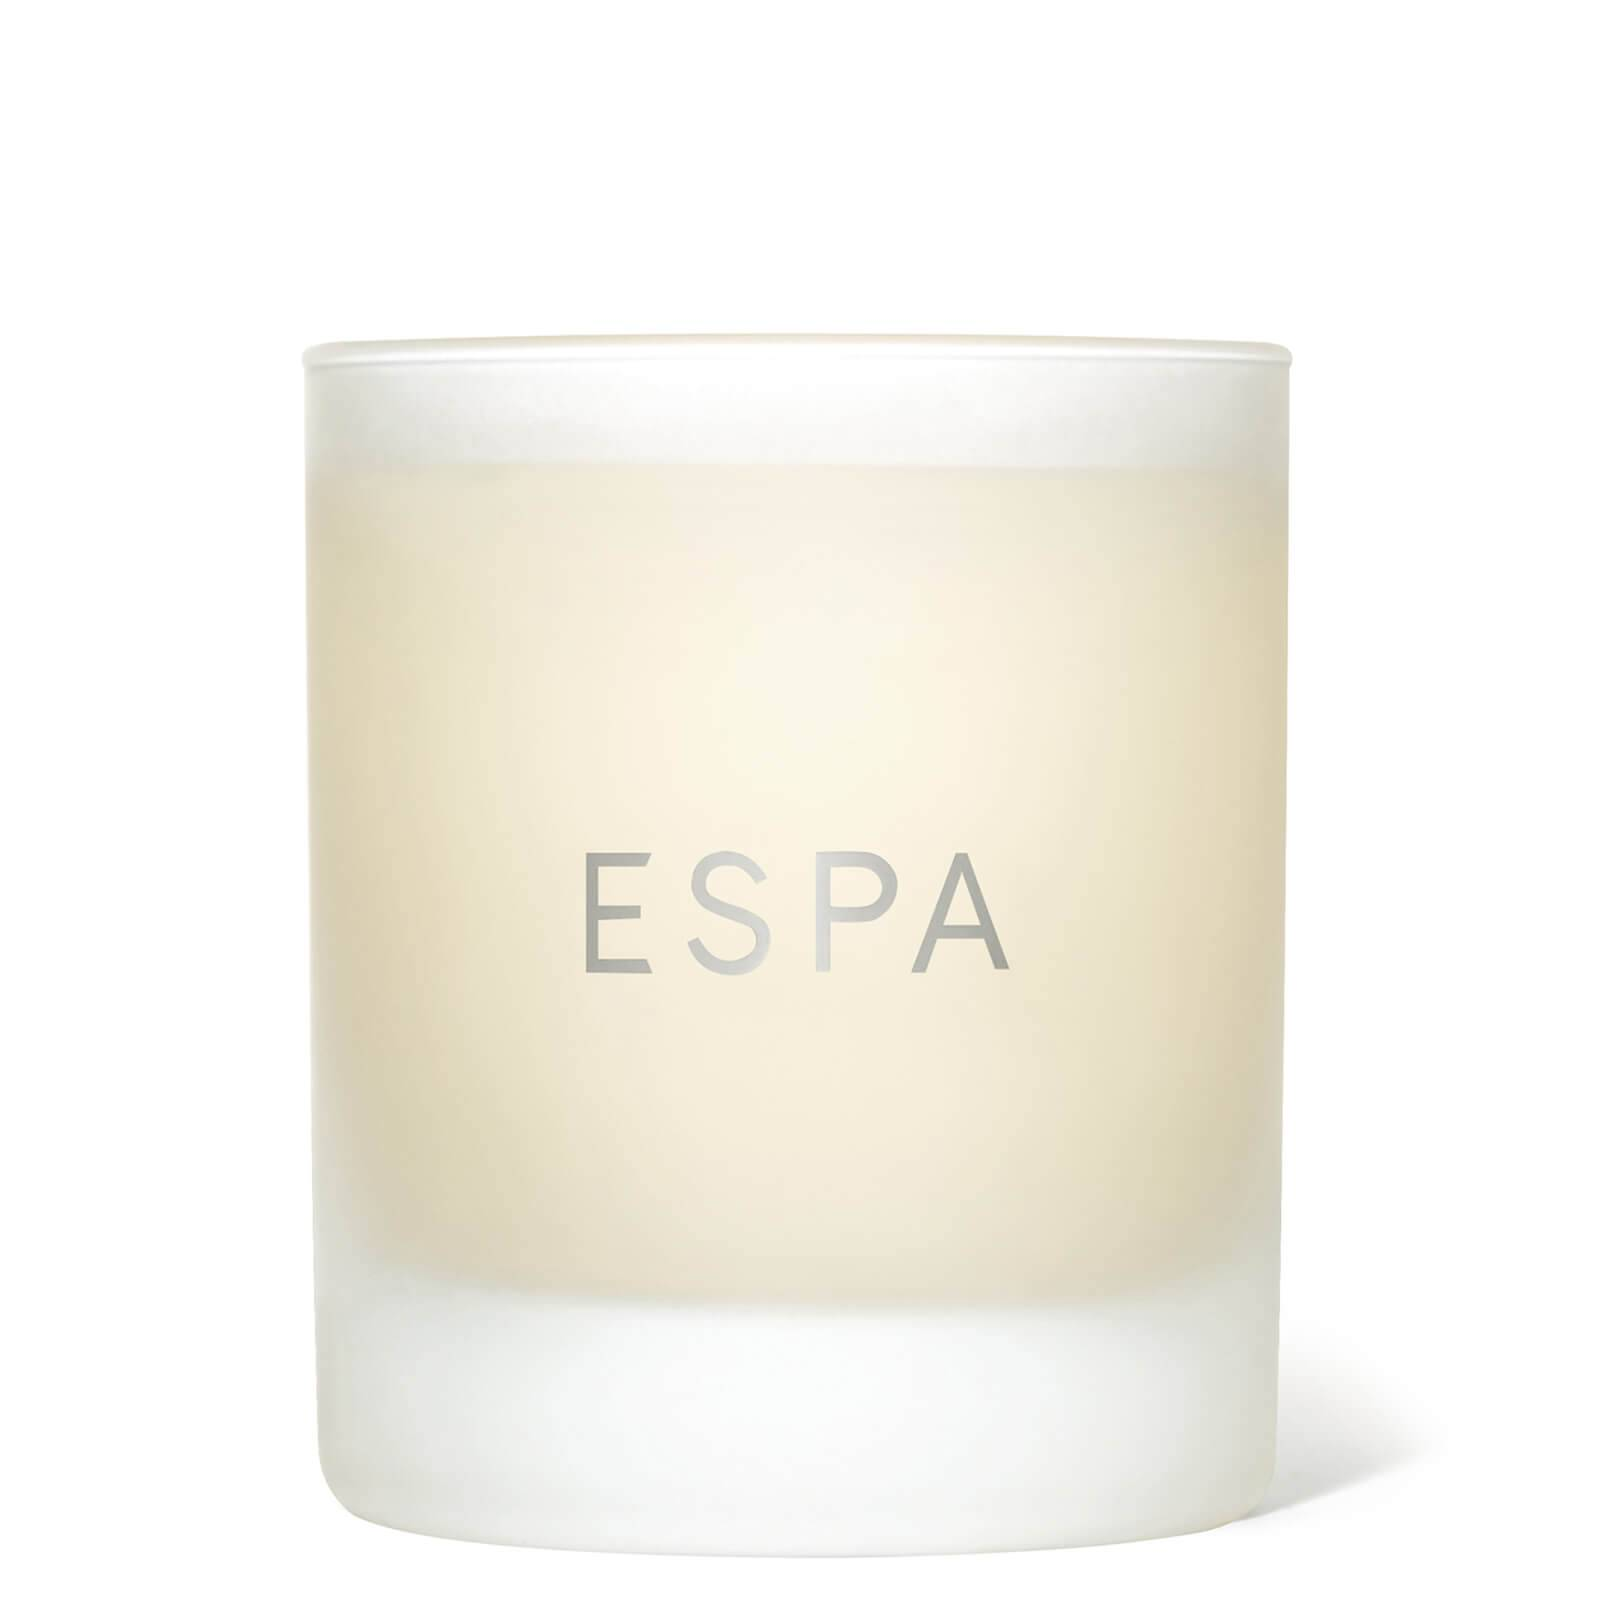 ESPA Soothing Candle 200g